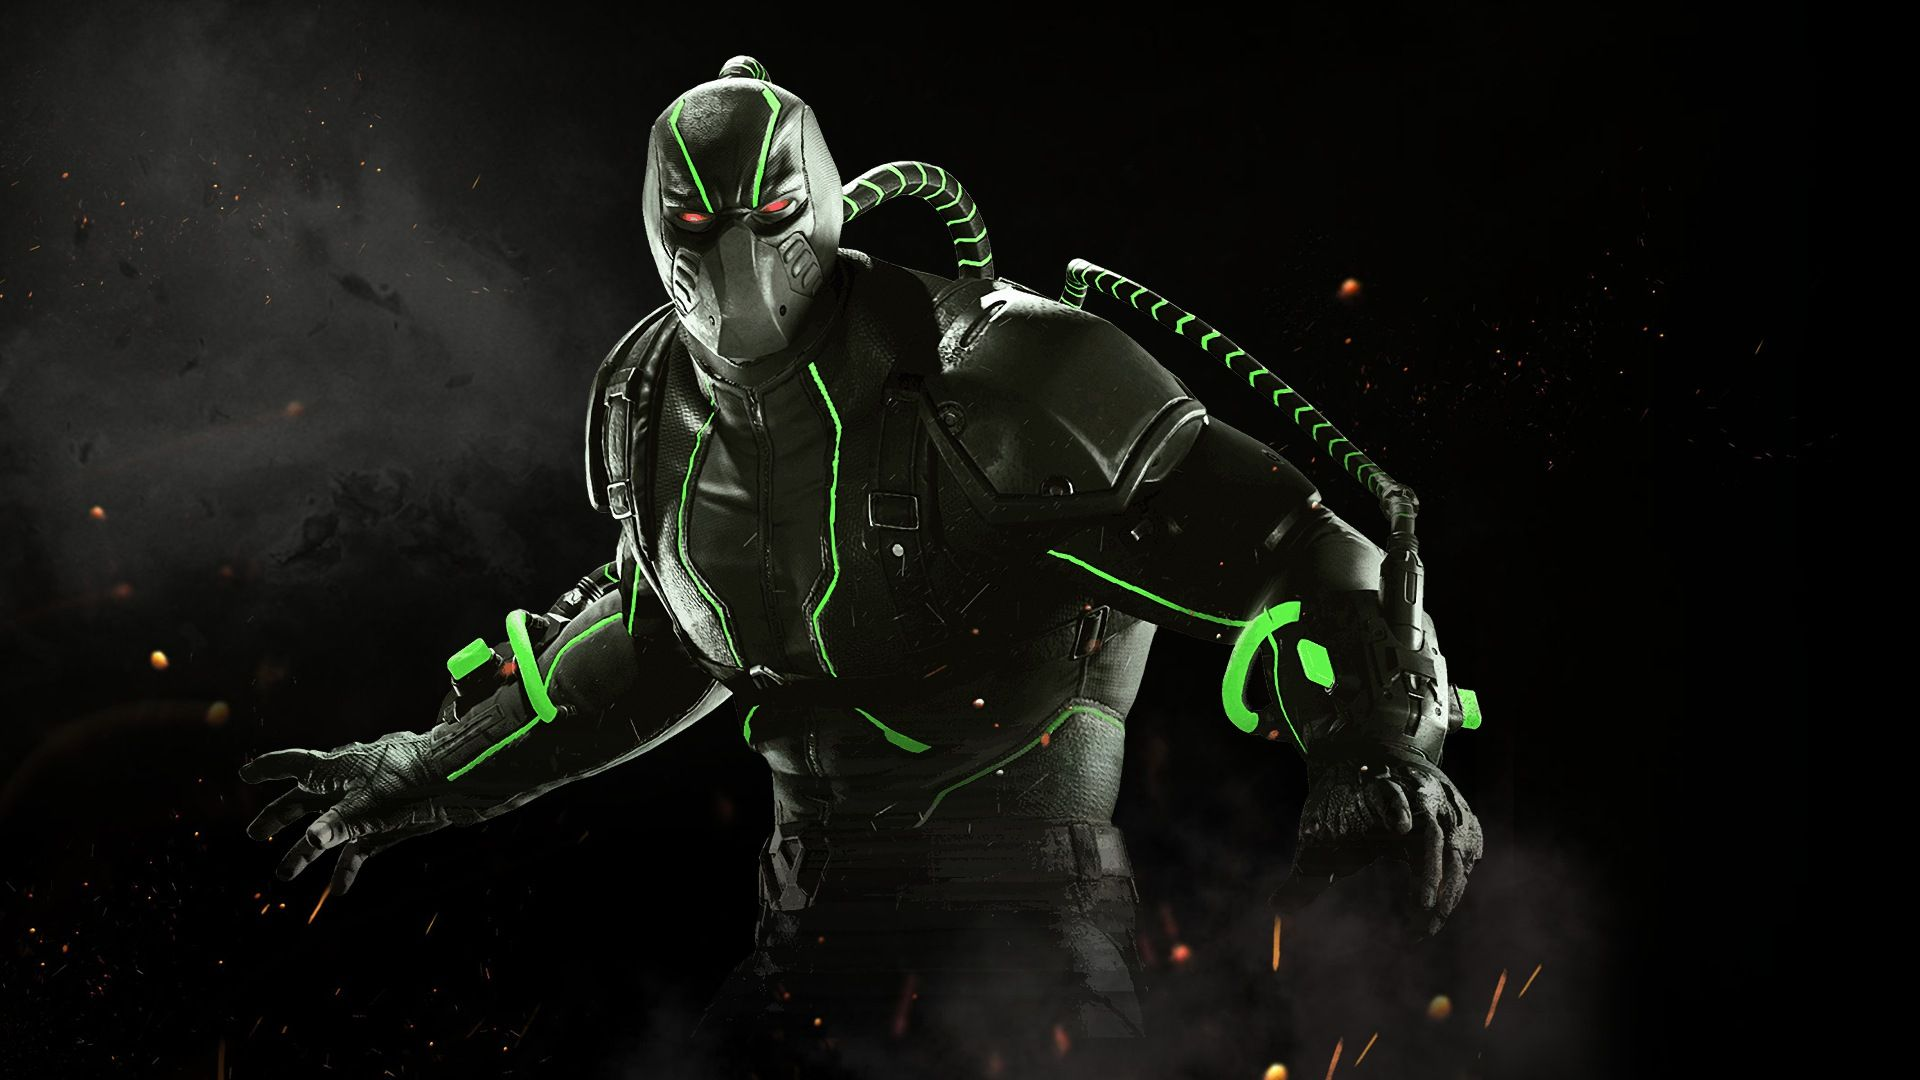 Bane injustice 2 game 1920x1080 wallpaper injustice 2 - Bane wallpaper ...